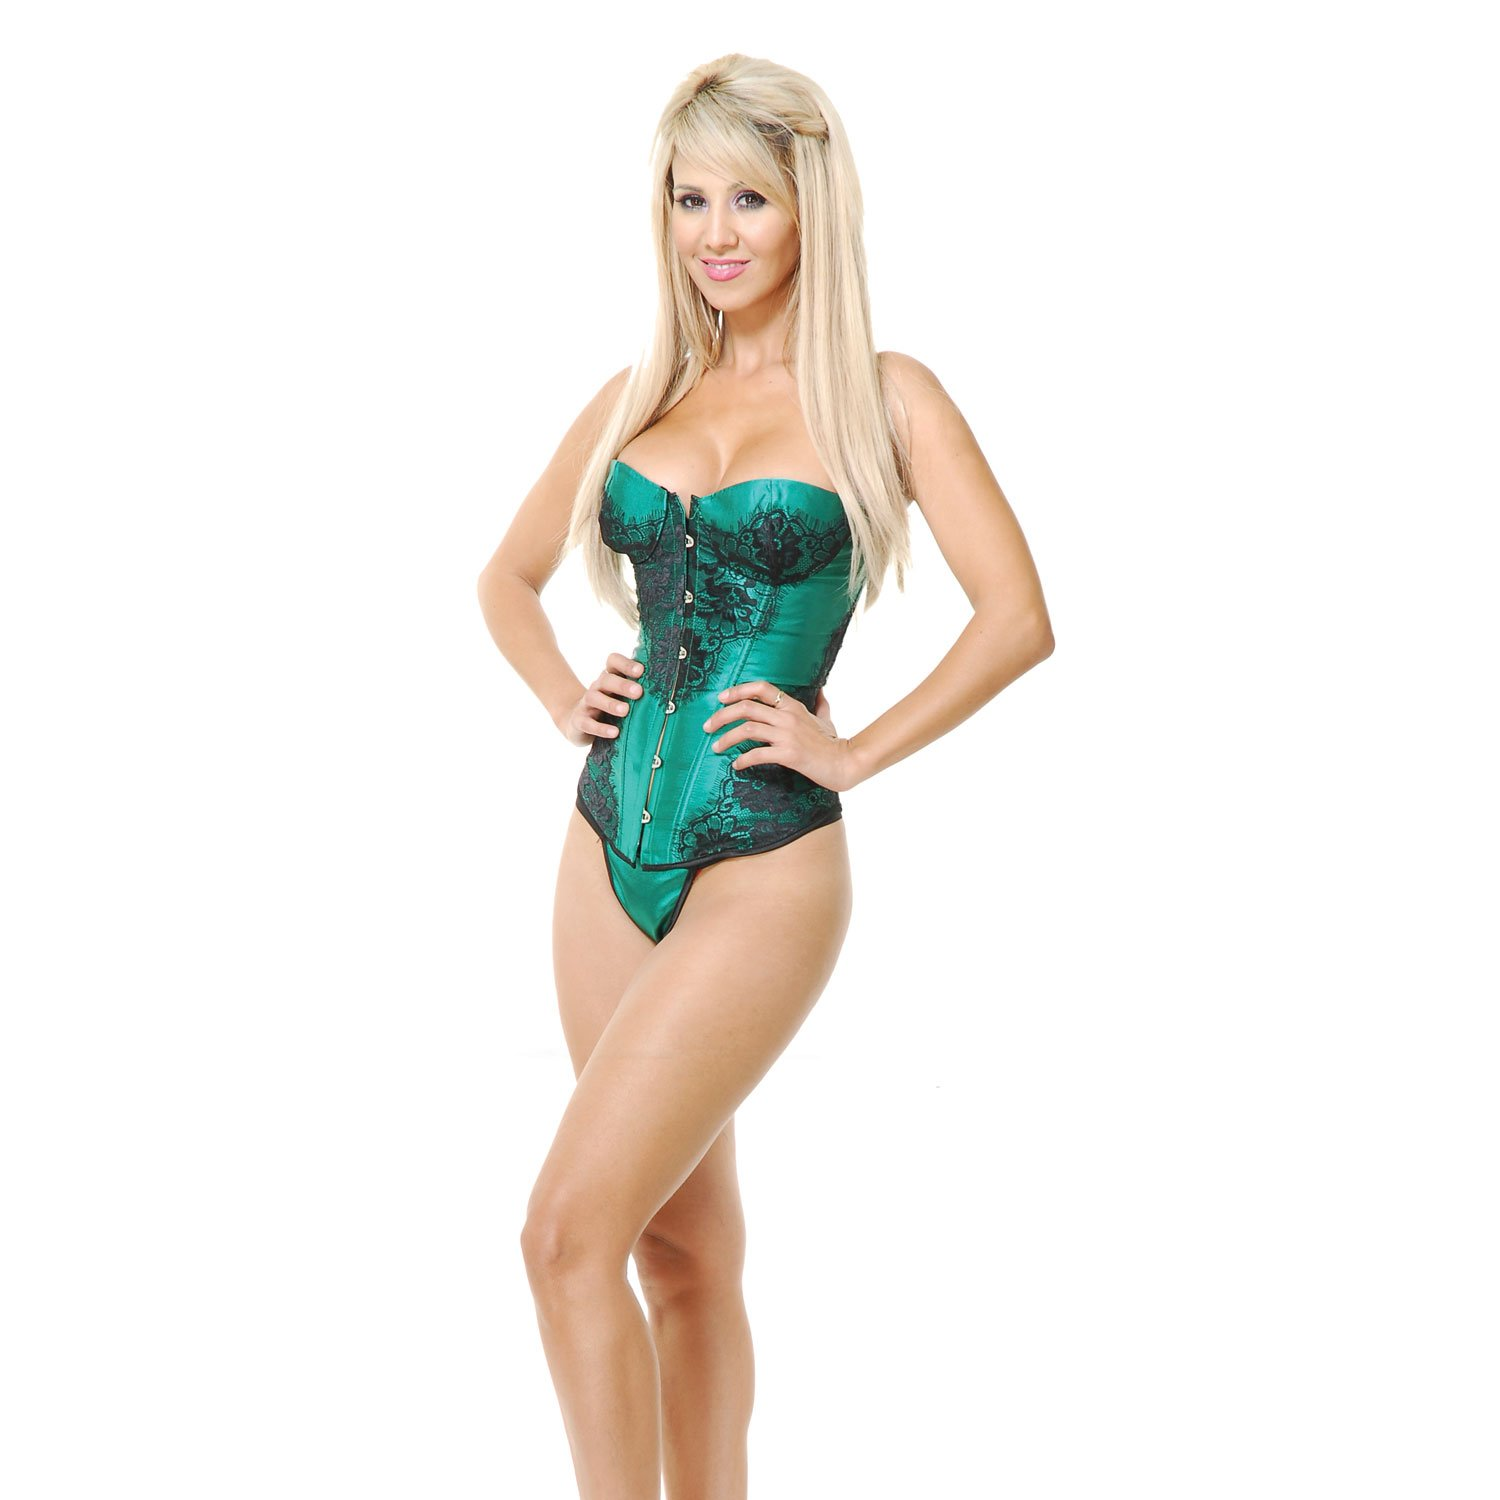 CHARADES CORSET W/LACE APPLIQUE & THONG Green Small Size by Charades